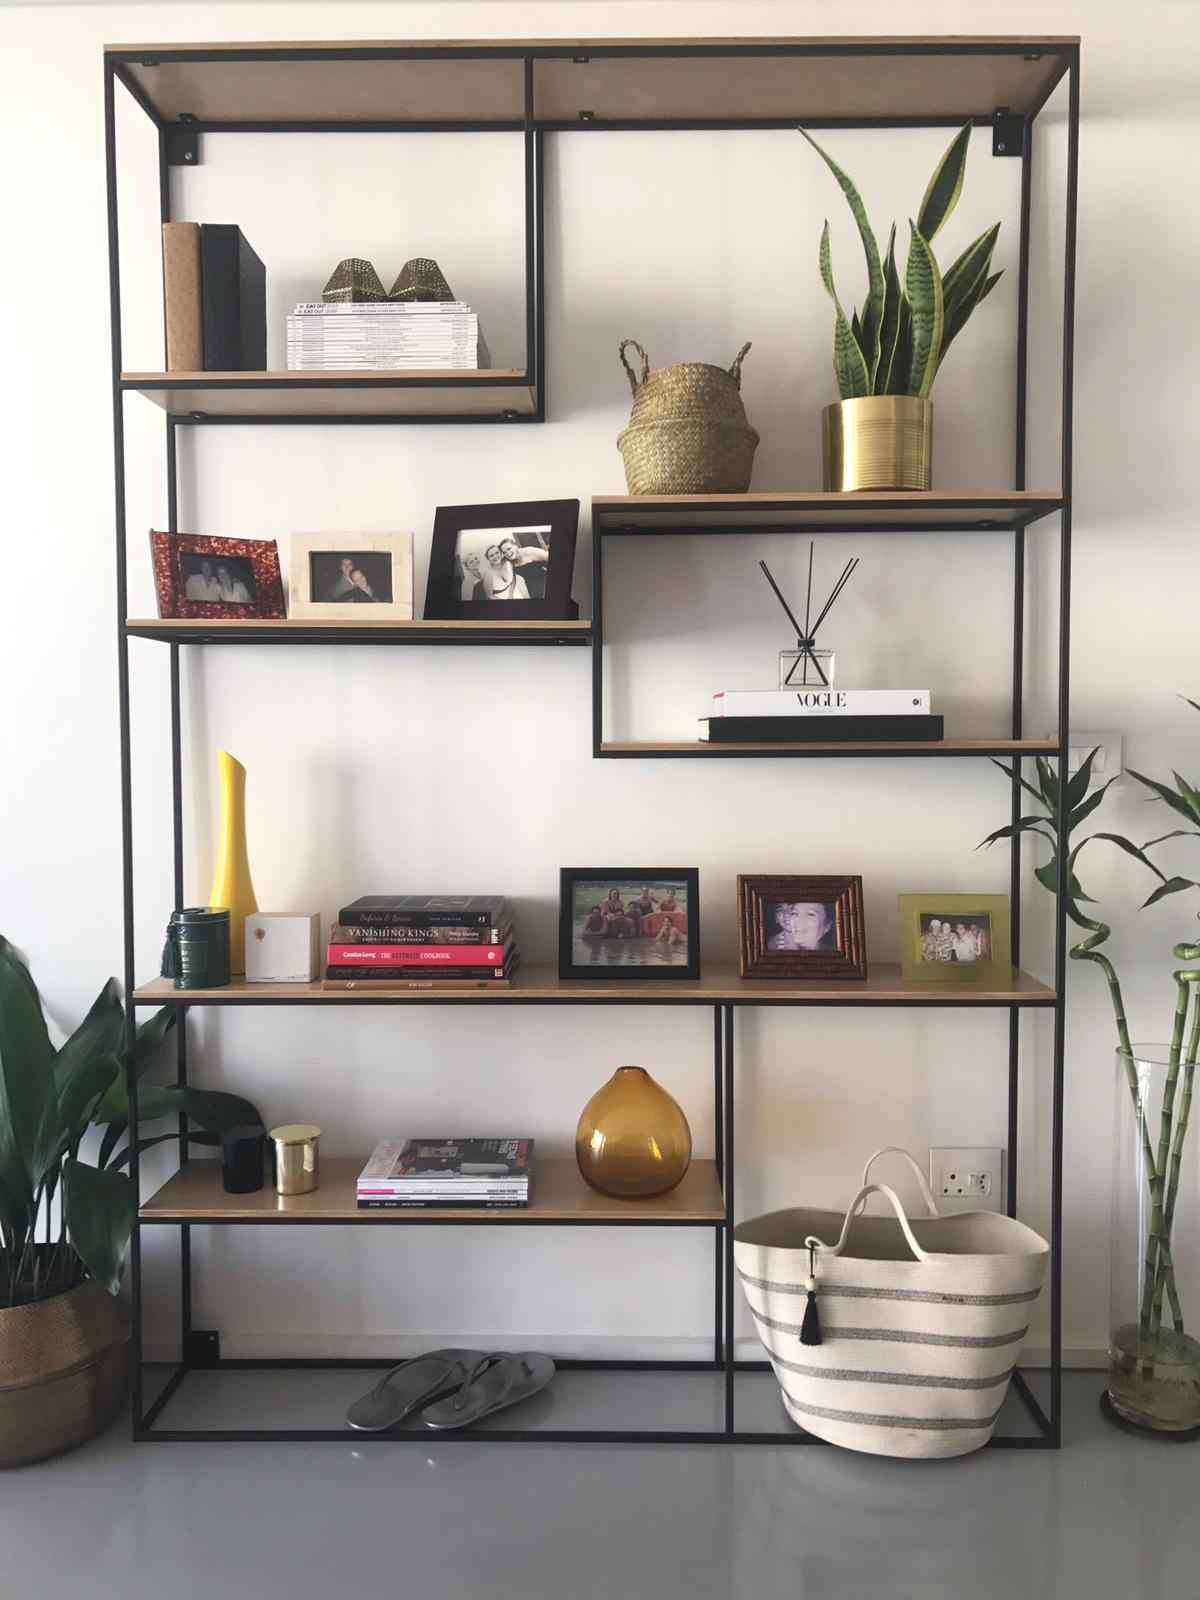 Steel and wood shelving. Living area